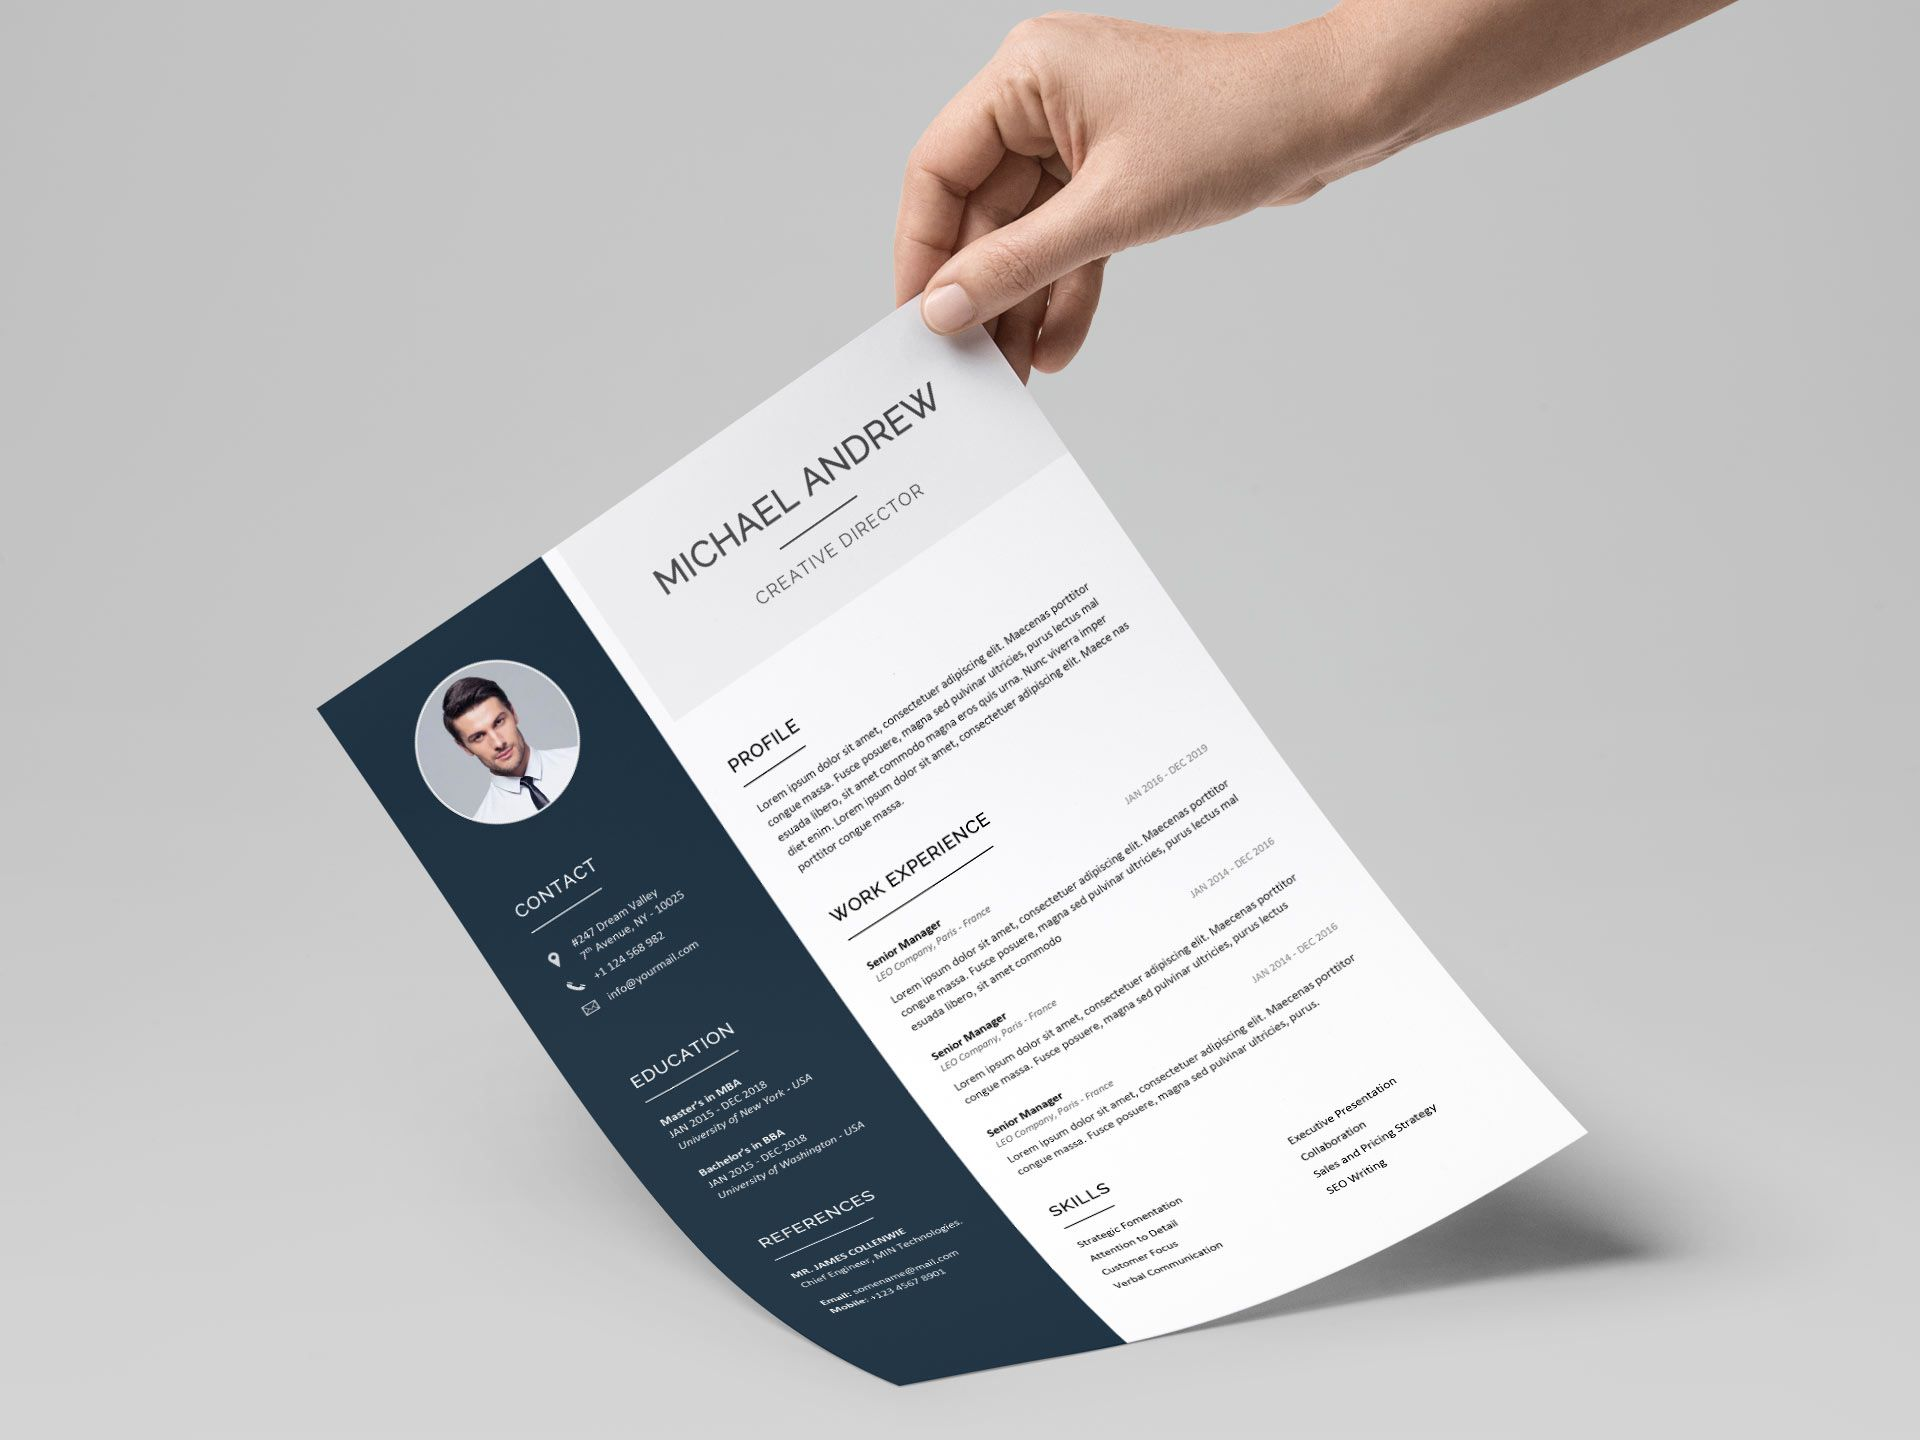 004 Formidable Free Stylish Resume Template Photo  Templates Word DownloadFull